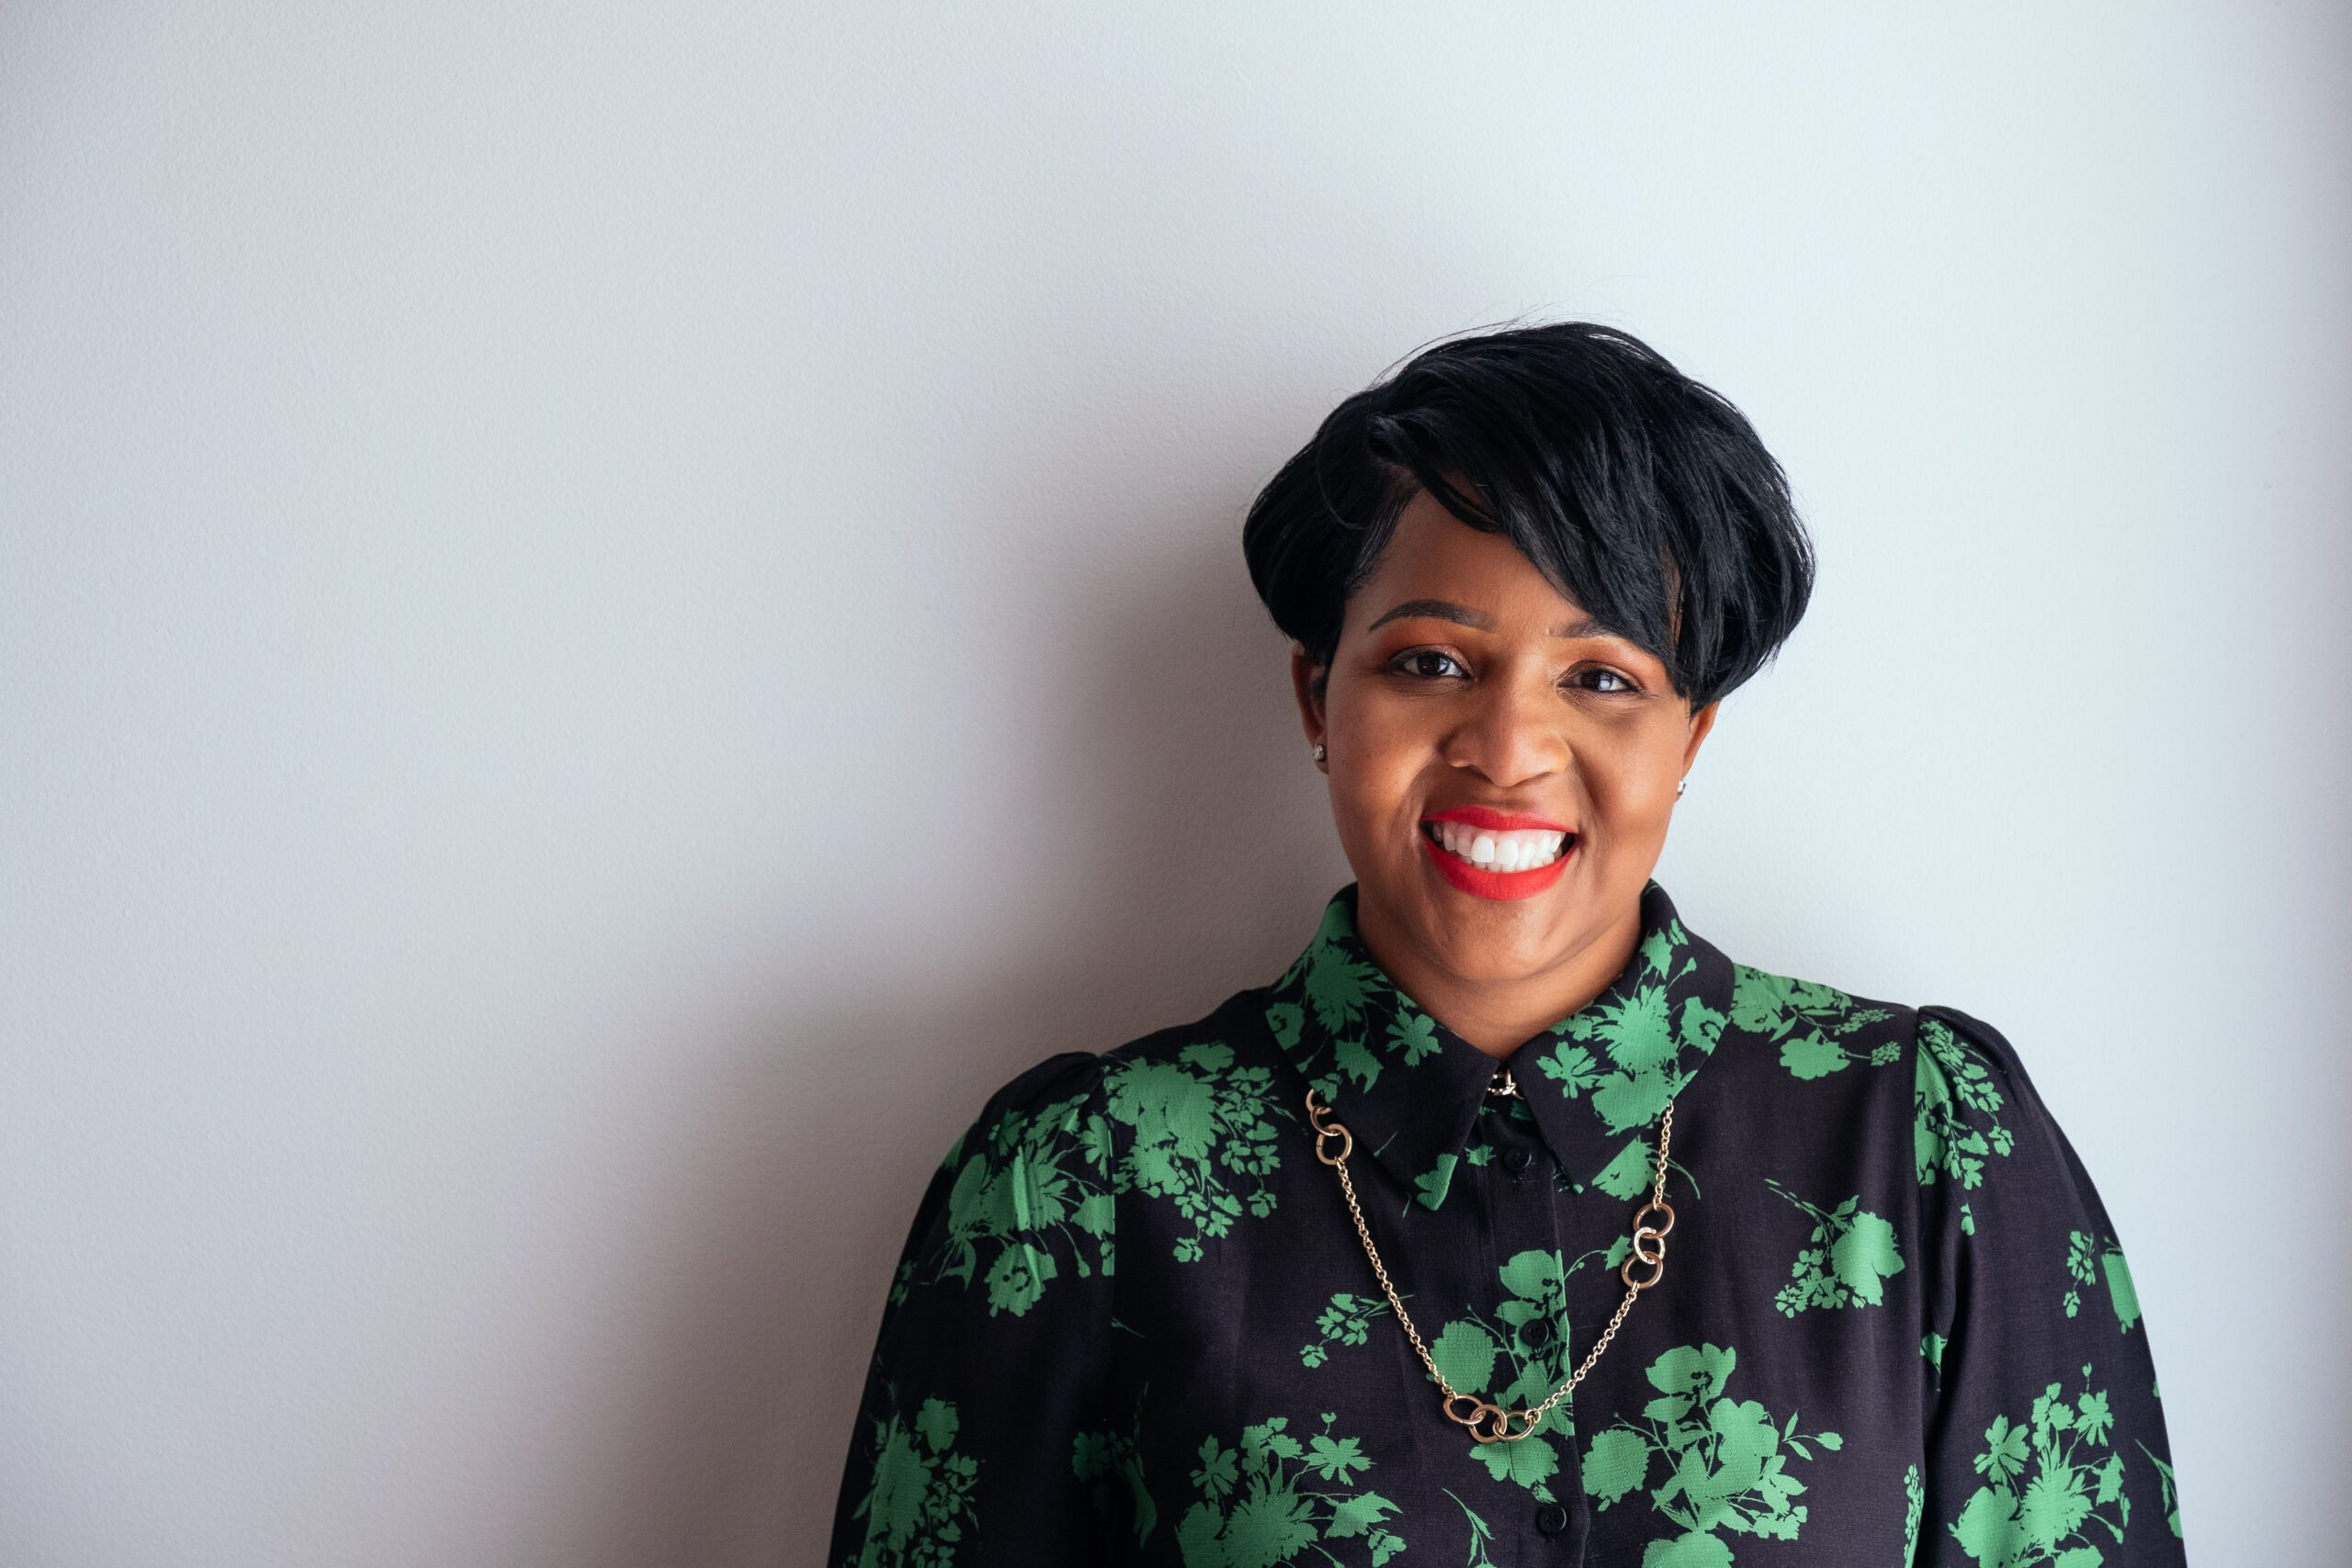 New York City Therapist specializing in racial identity issues, anxiety, and depression. }}